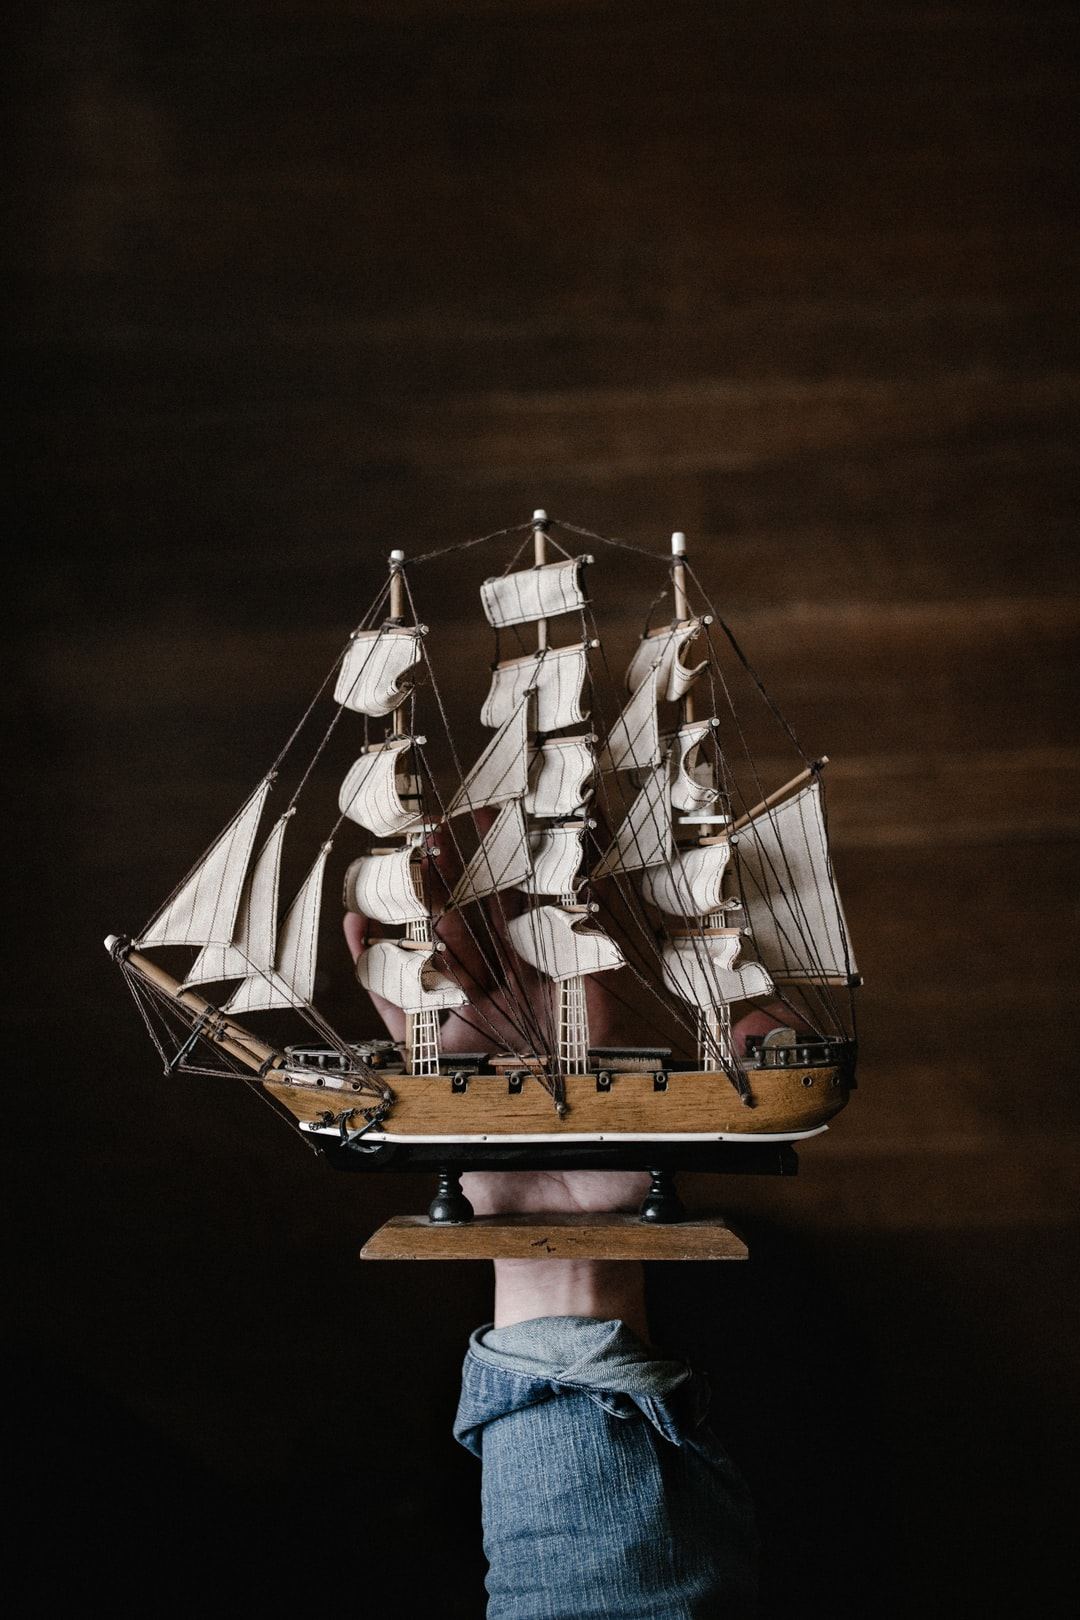 This is Alexandria, a model ship I found tucked away in an antique store in North Carolina. I've always been captivated by the sea and as a kid dreamed of becoming a pirate to search for buried treasure. Although I've yet to become a pirate or find lost treasure, I keep Alexandria on my desk as a reminder to keep dreaming and never fully grow up.